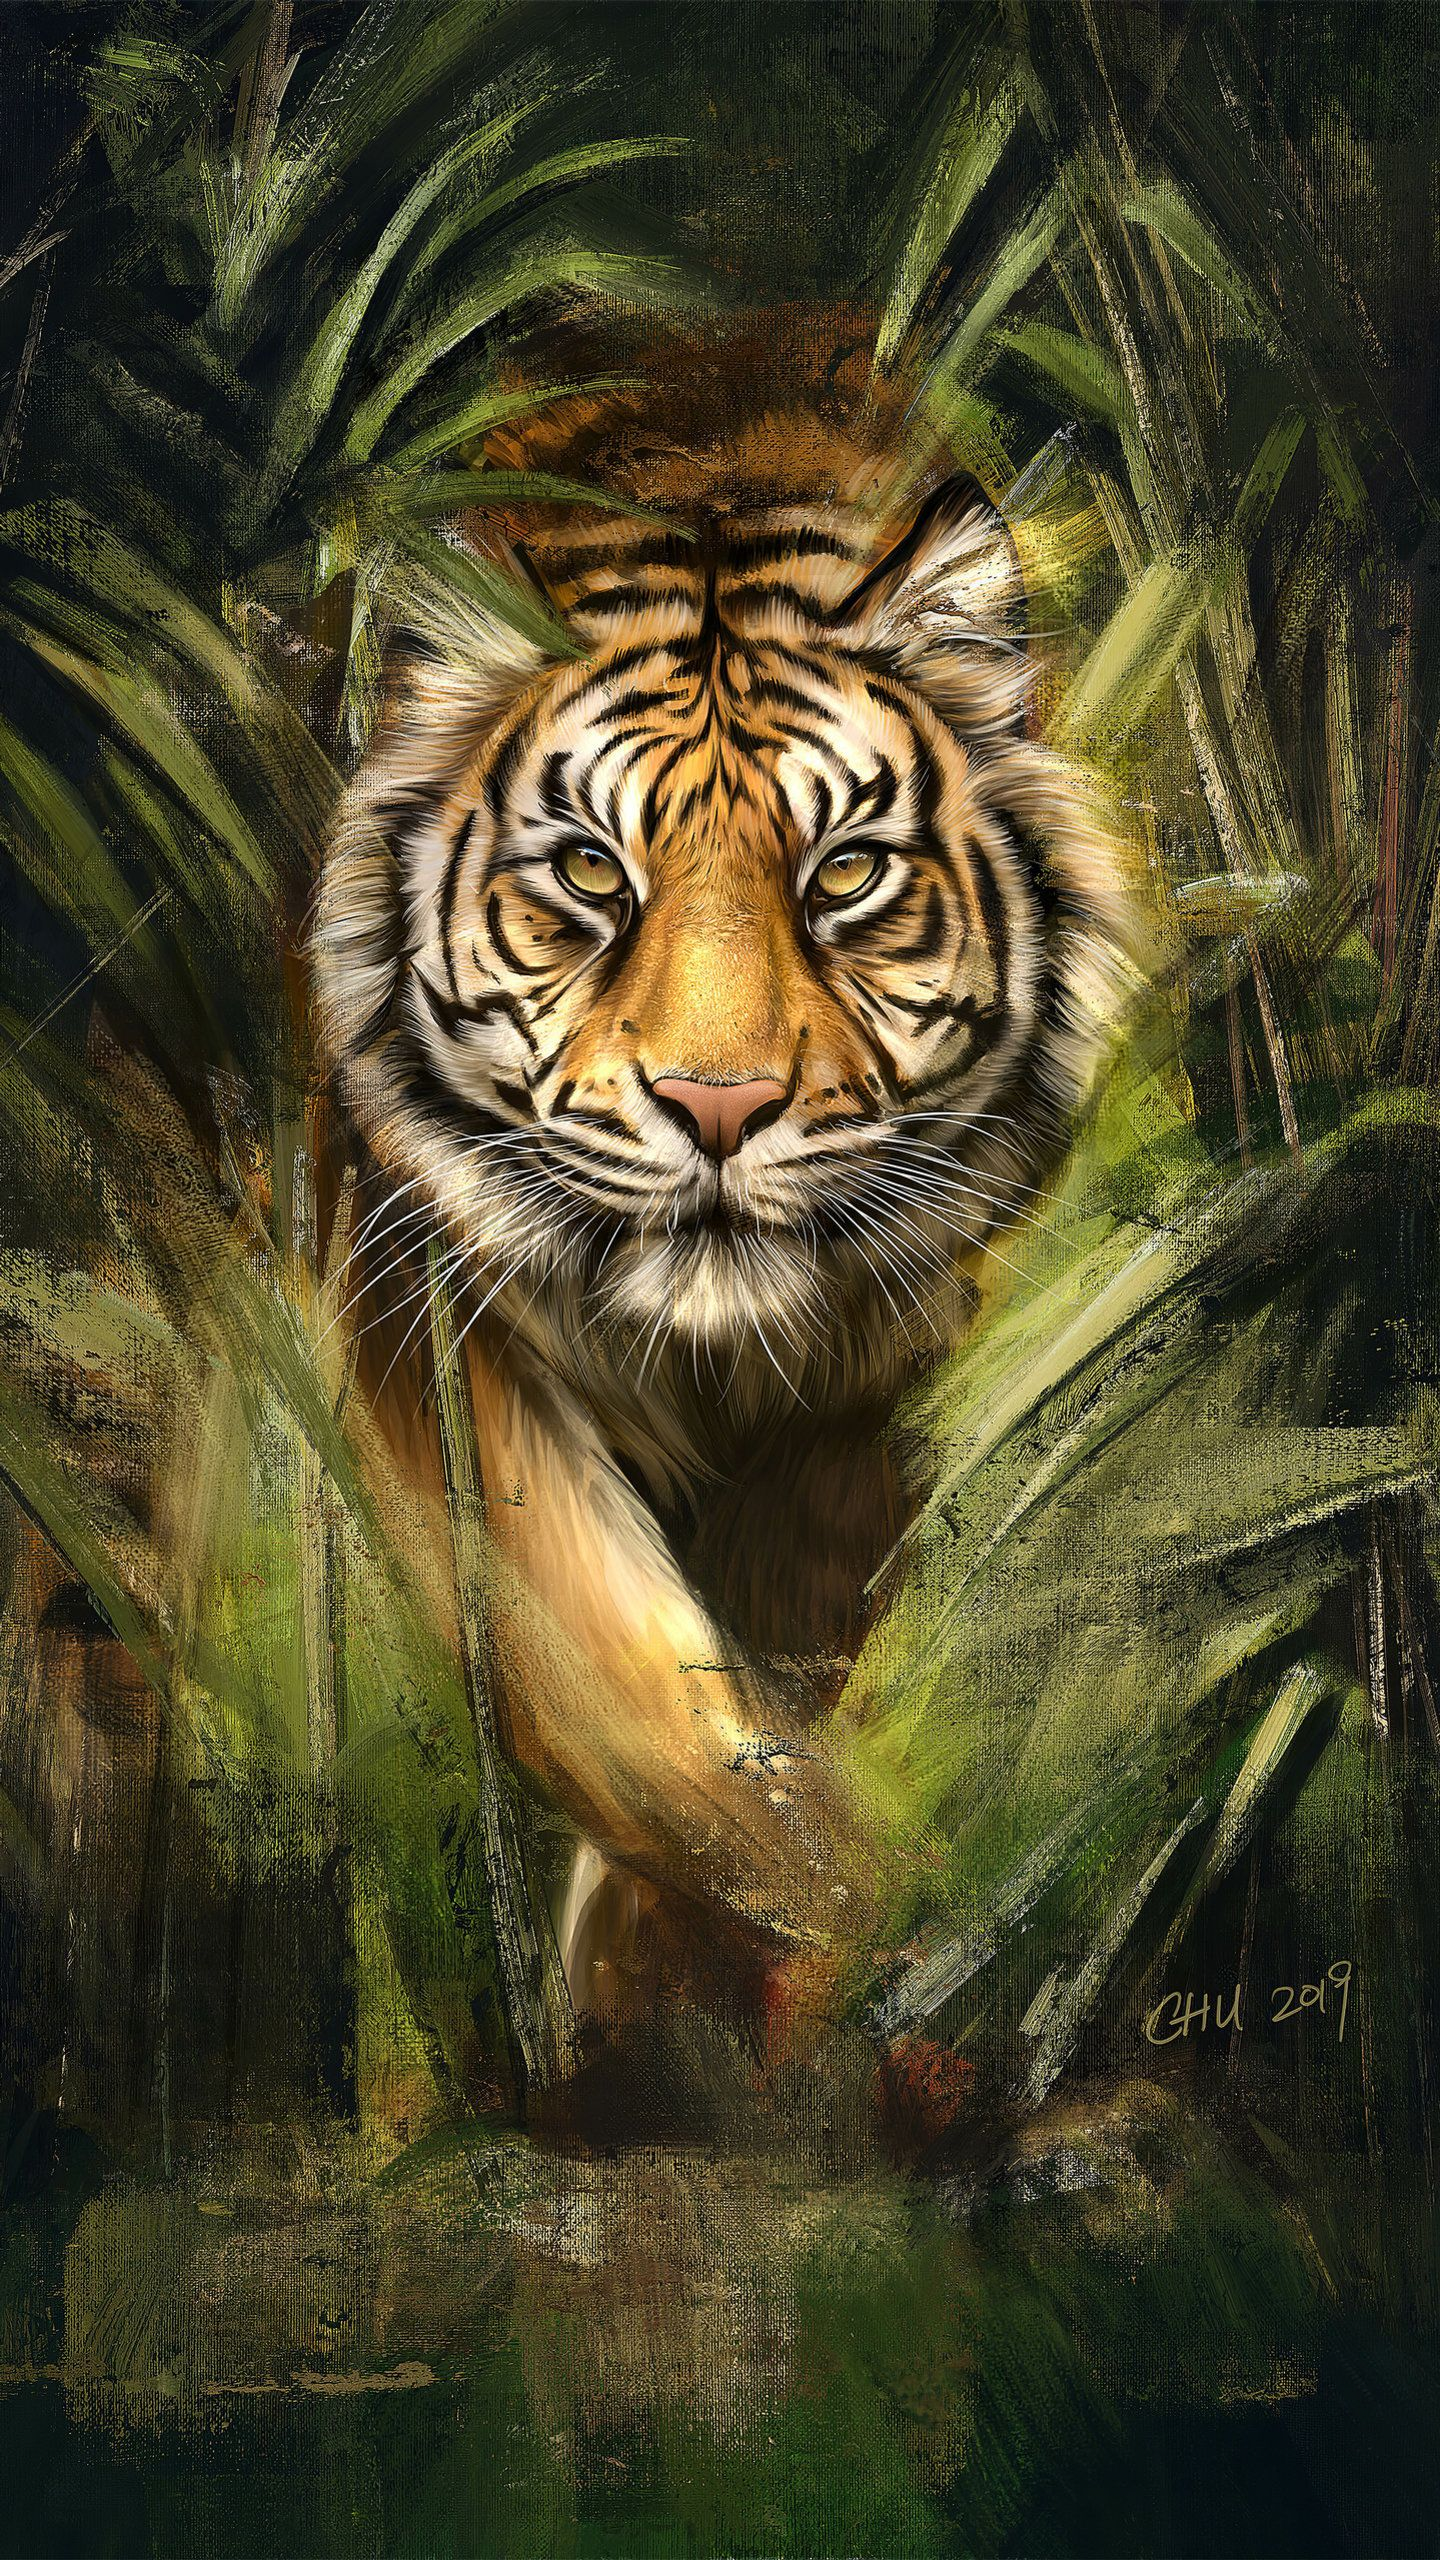 Tiger Painting Art Hd Animals Wallpapers Photos And Pictures Id 44969 Tiger Painting Tiger Pictures Tiger Artwork